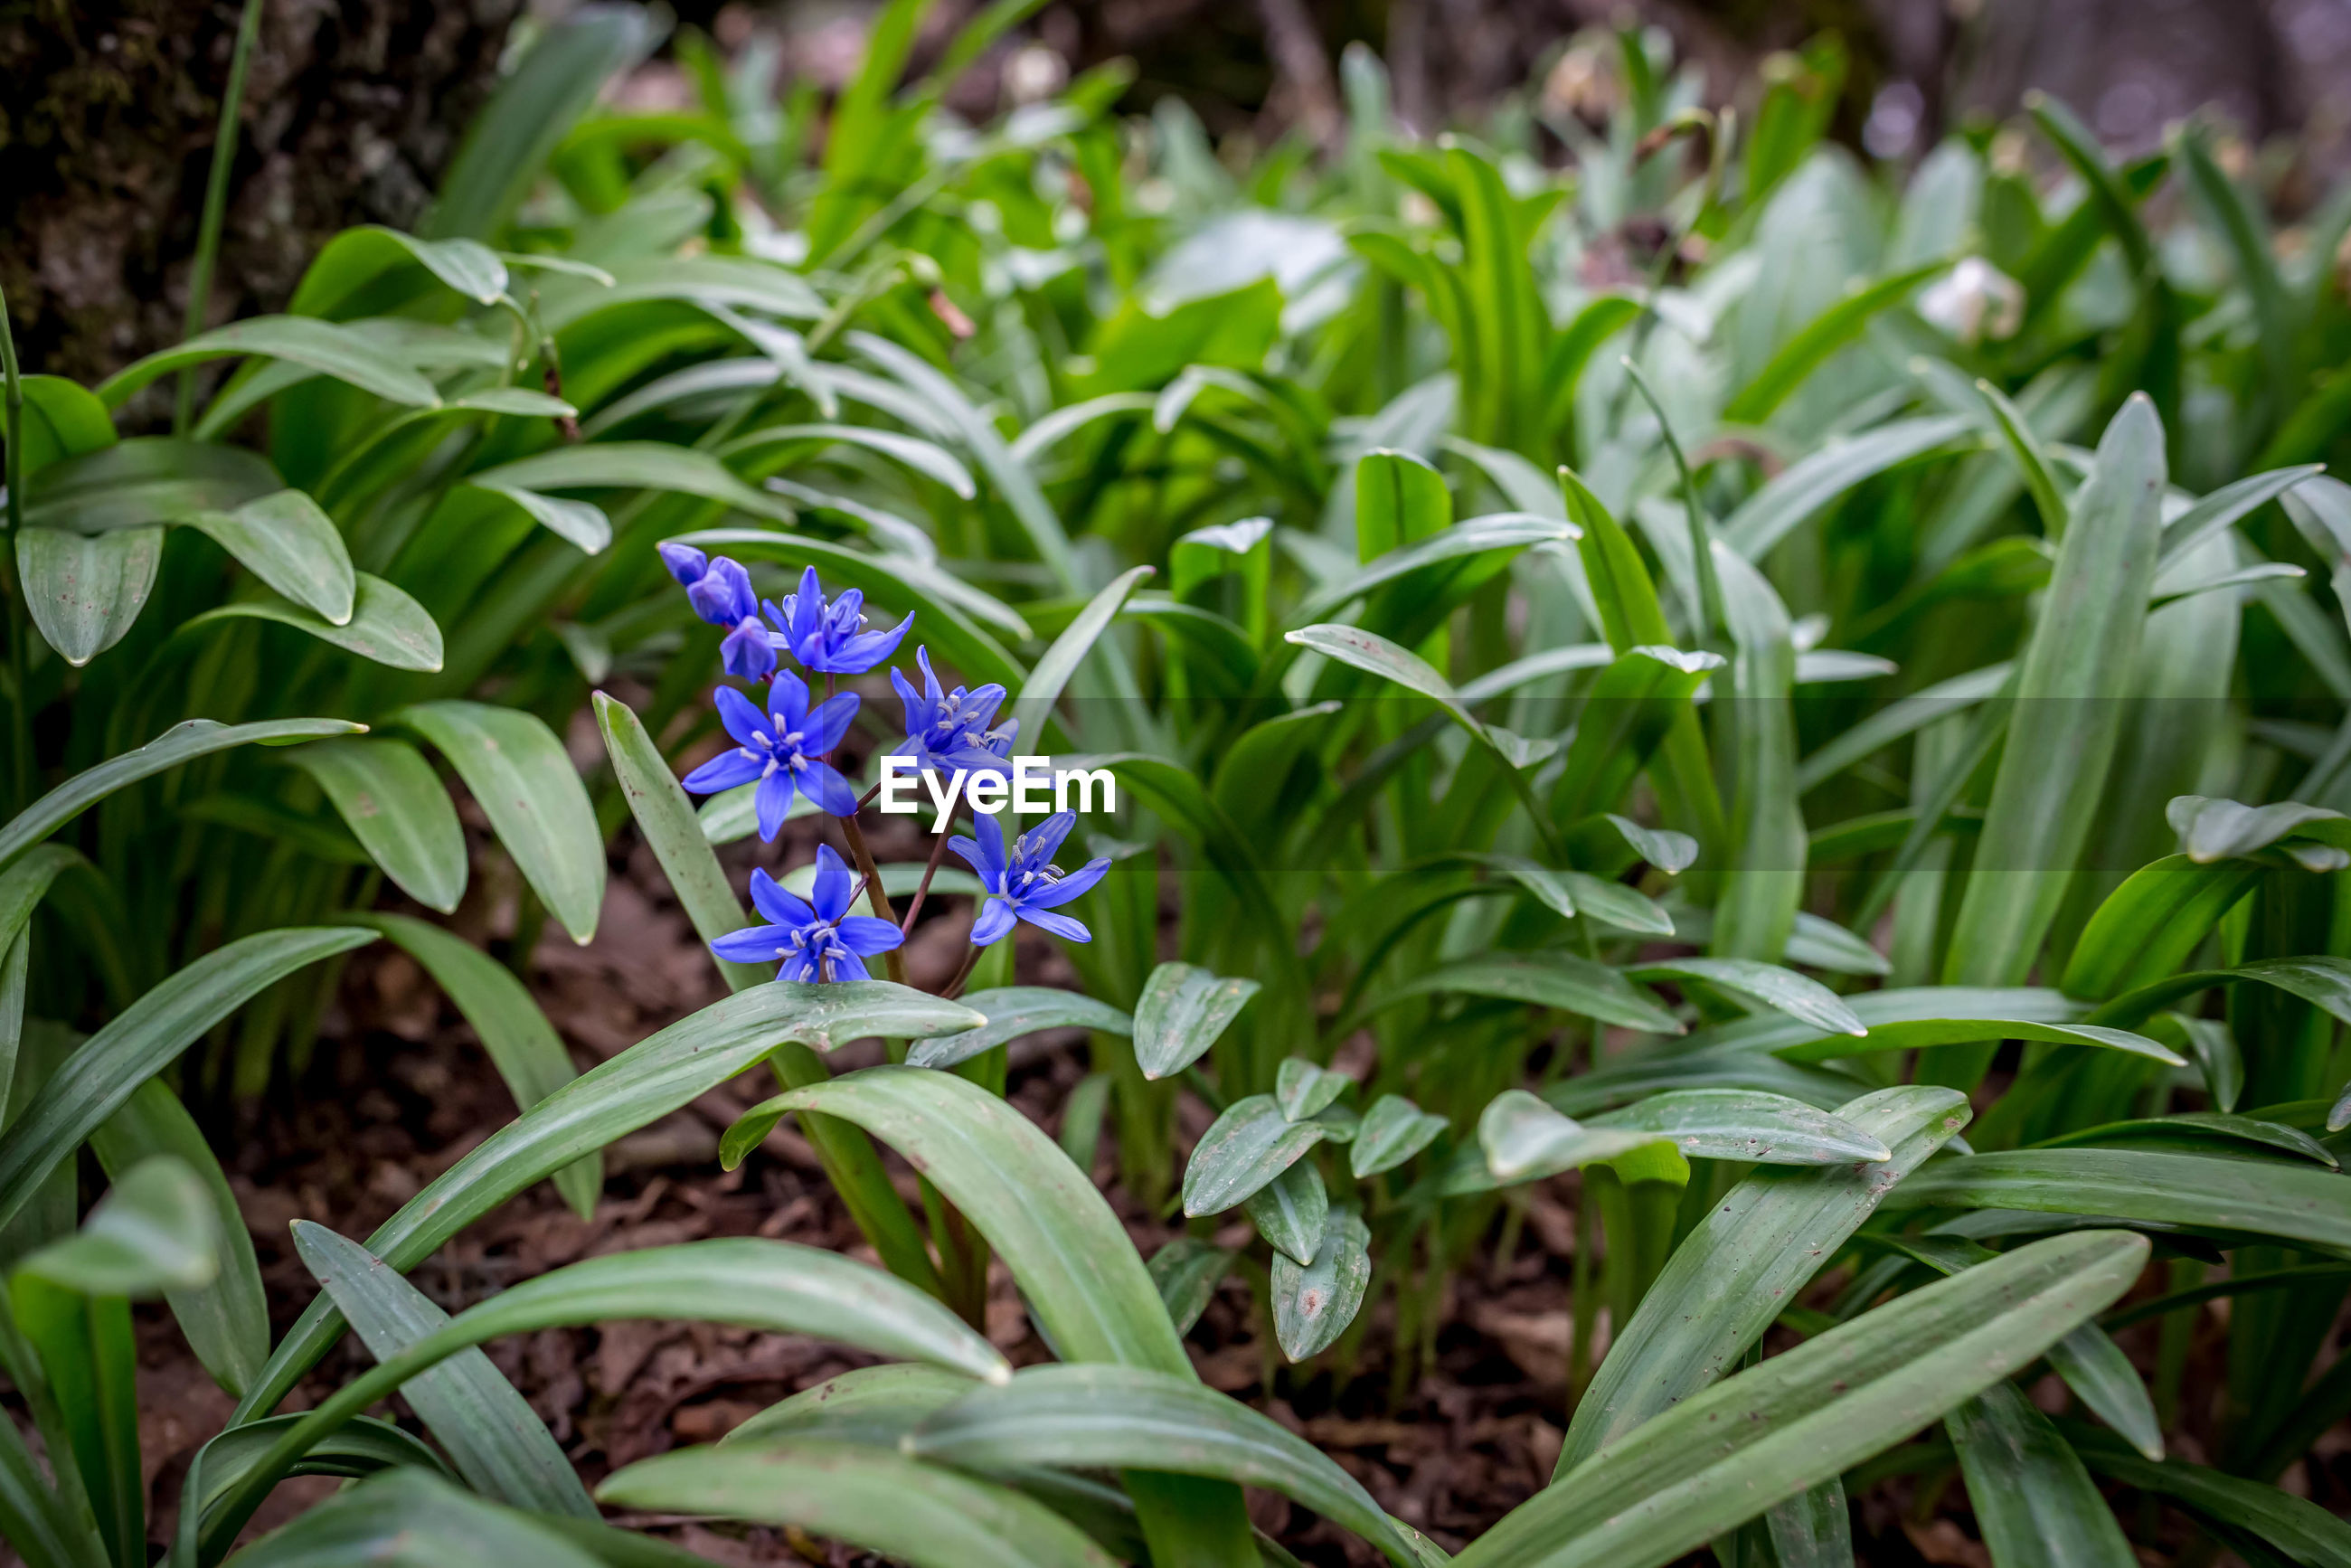 flowering plant, flower, plant, beauty in nature, freshness, fragility, growth, vulnerability, petal, flower head, close-up, purple, inflorescence, plant part, leaf, nature, green color, no people, botany, day, springtime